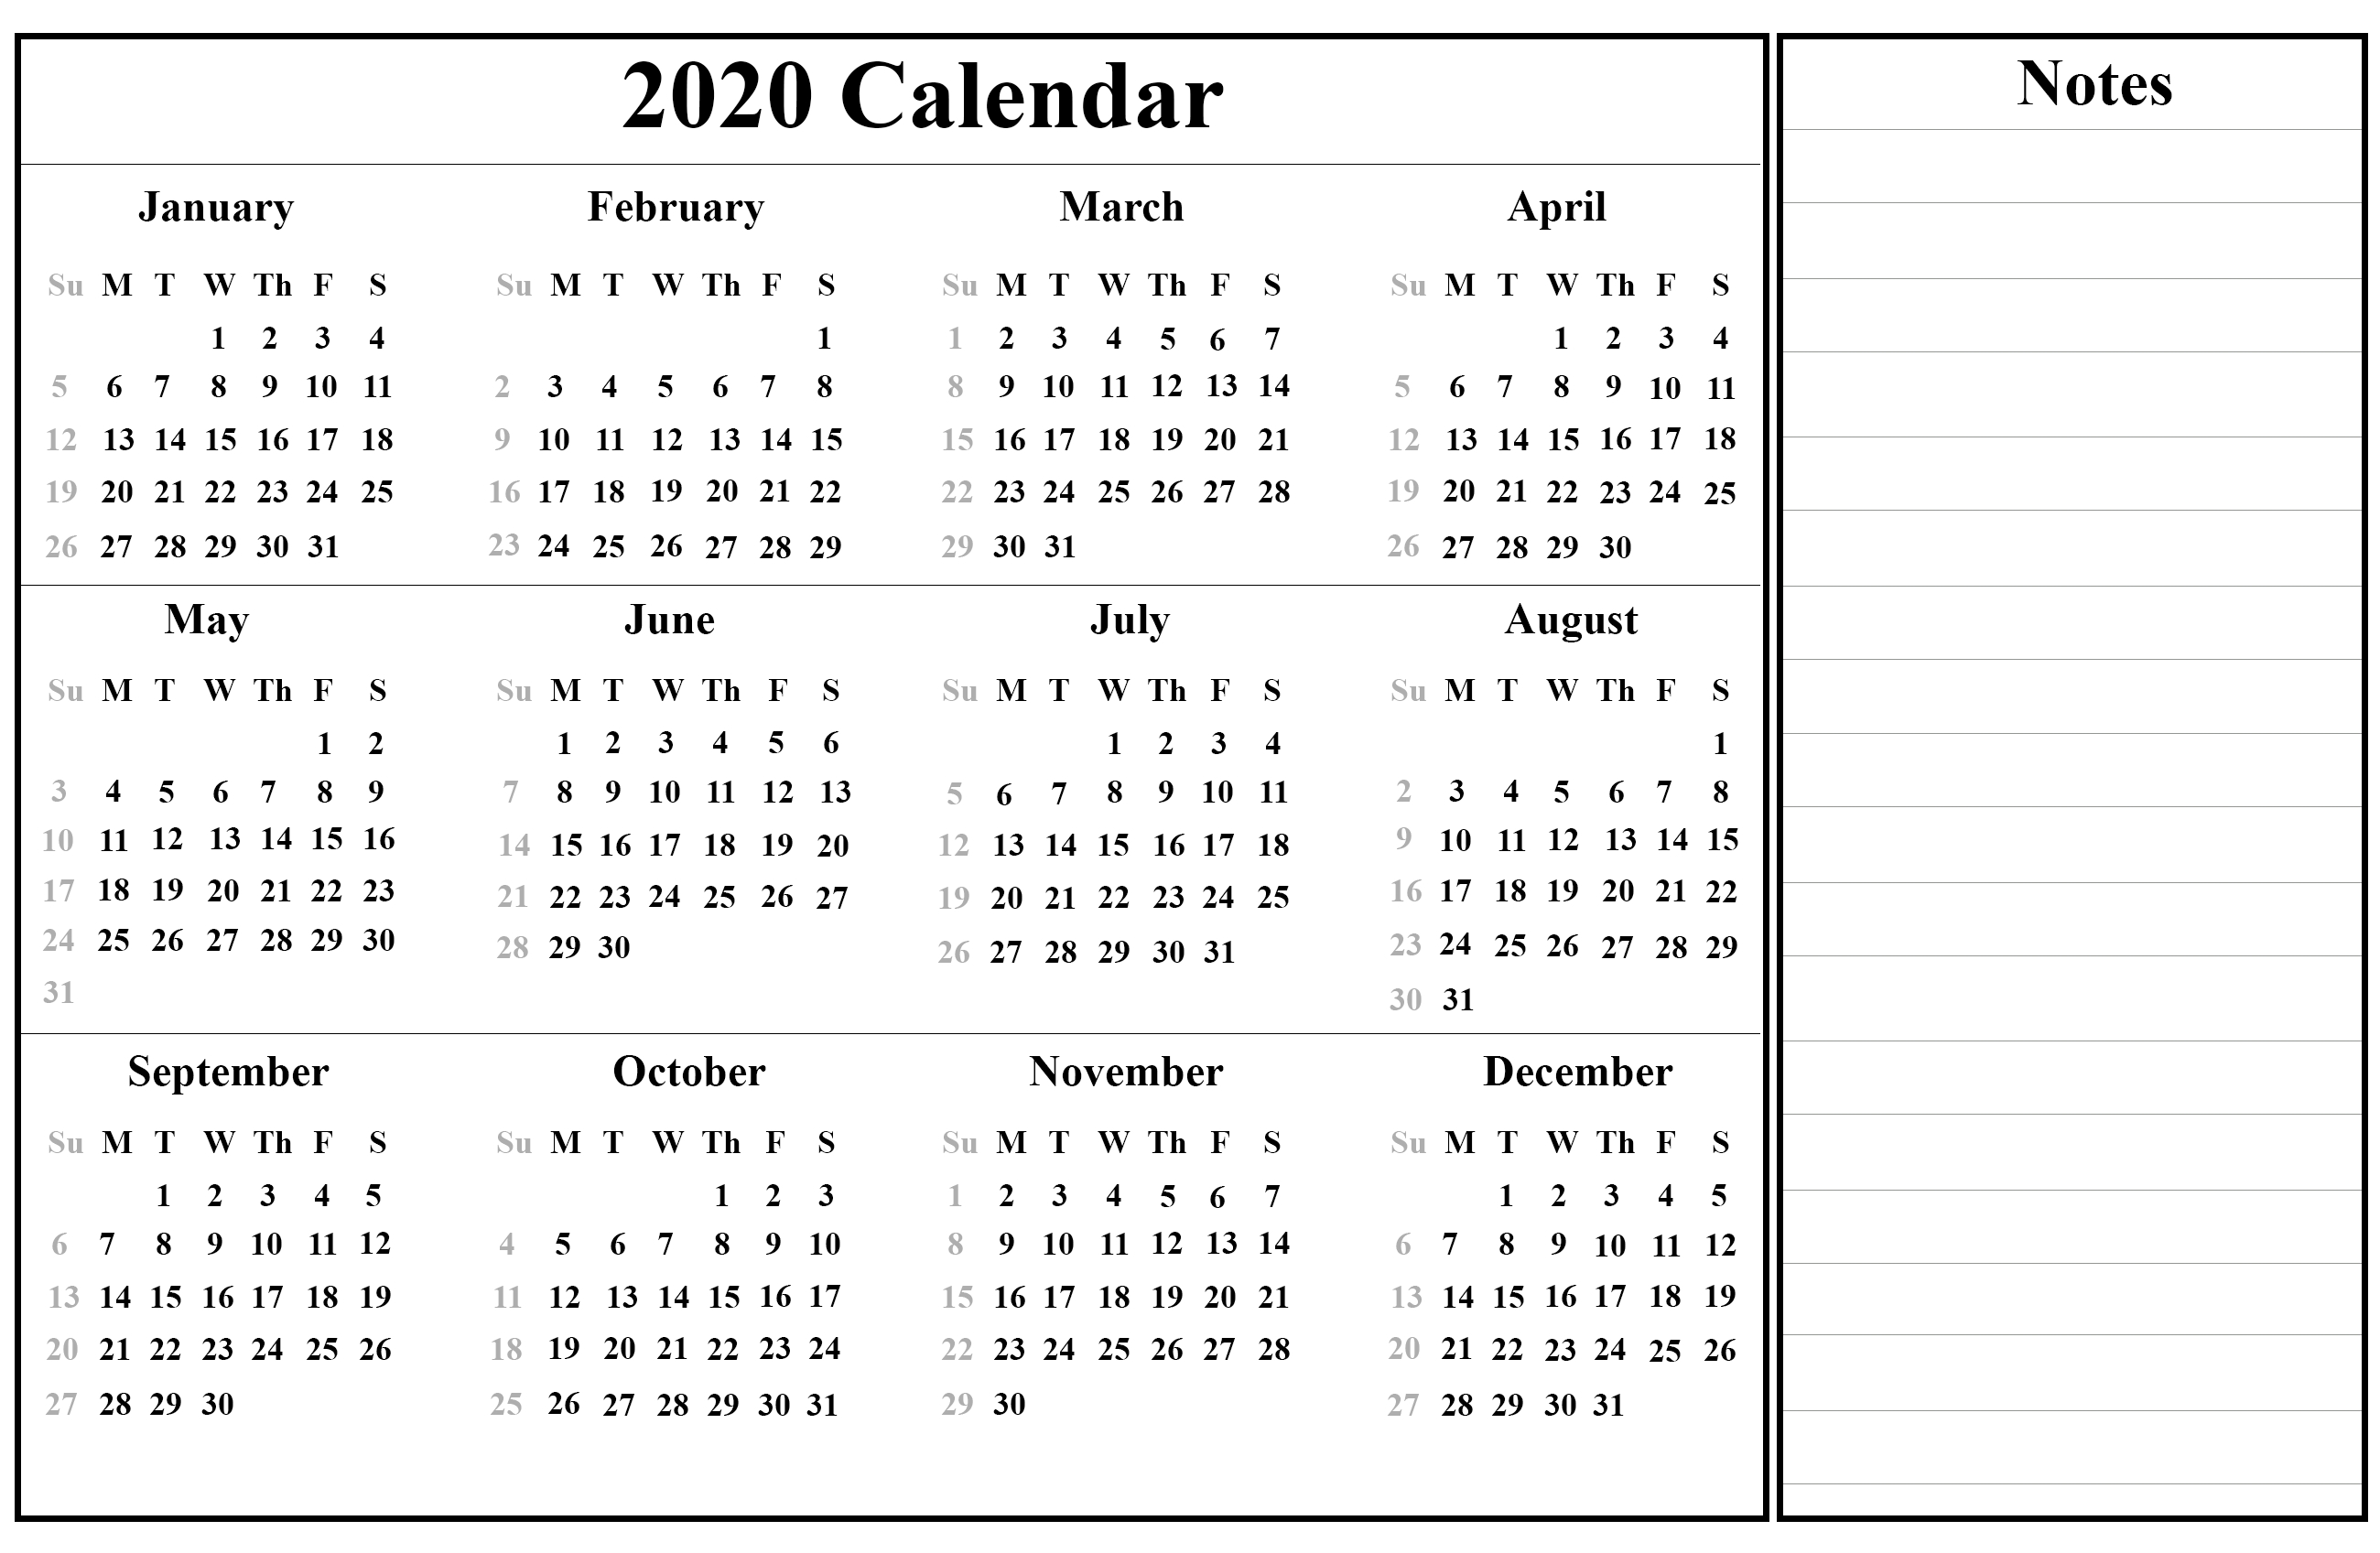 Free Printable Singapore Calendar 2020 With Holidays Impressive Year 2020 Calendar Singapore